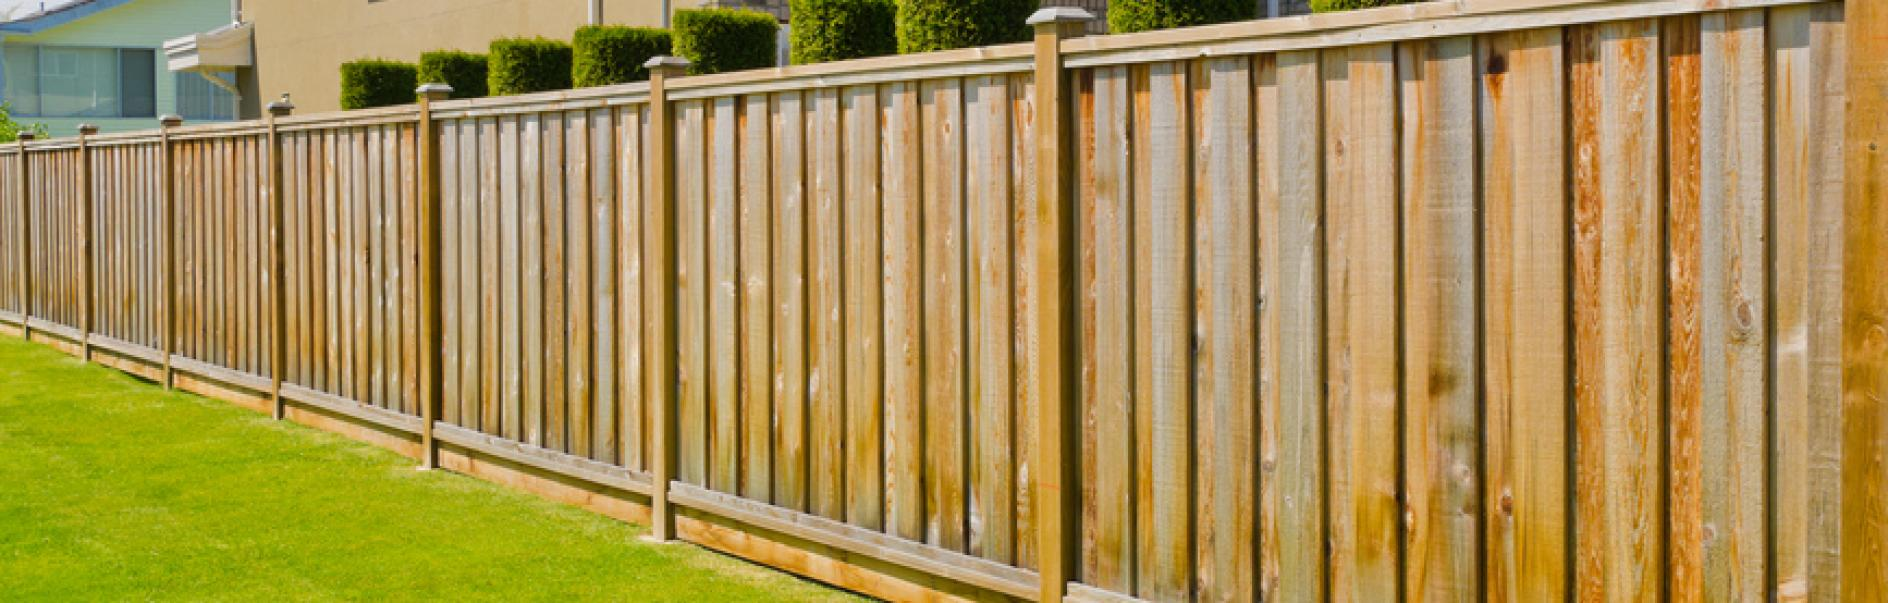 How to build a fence or garden screen